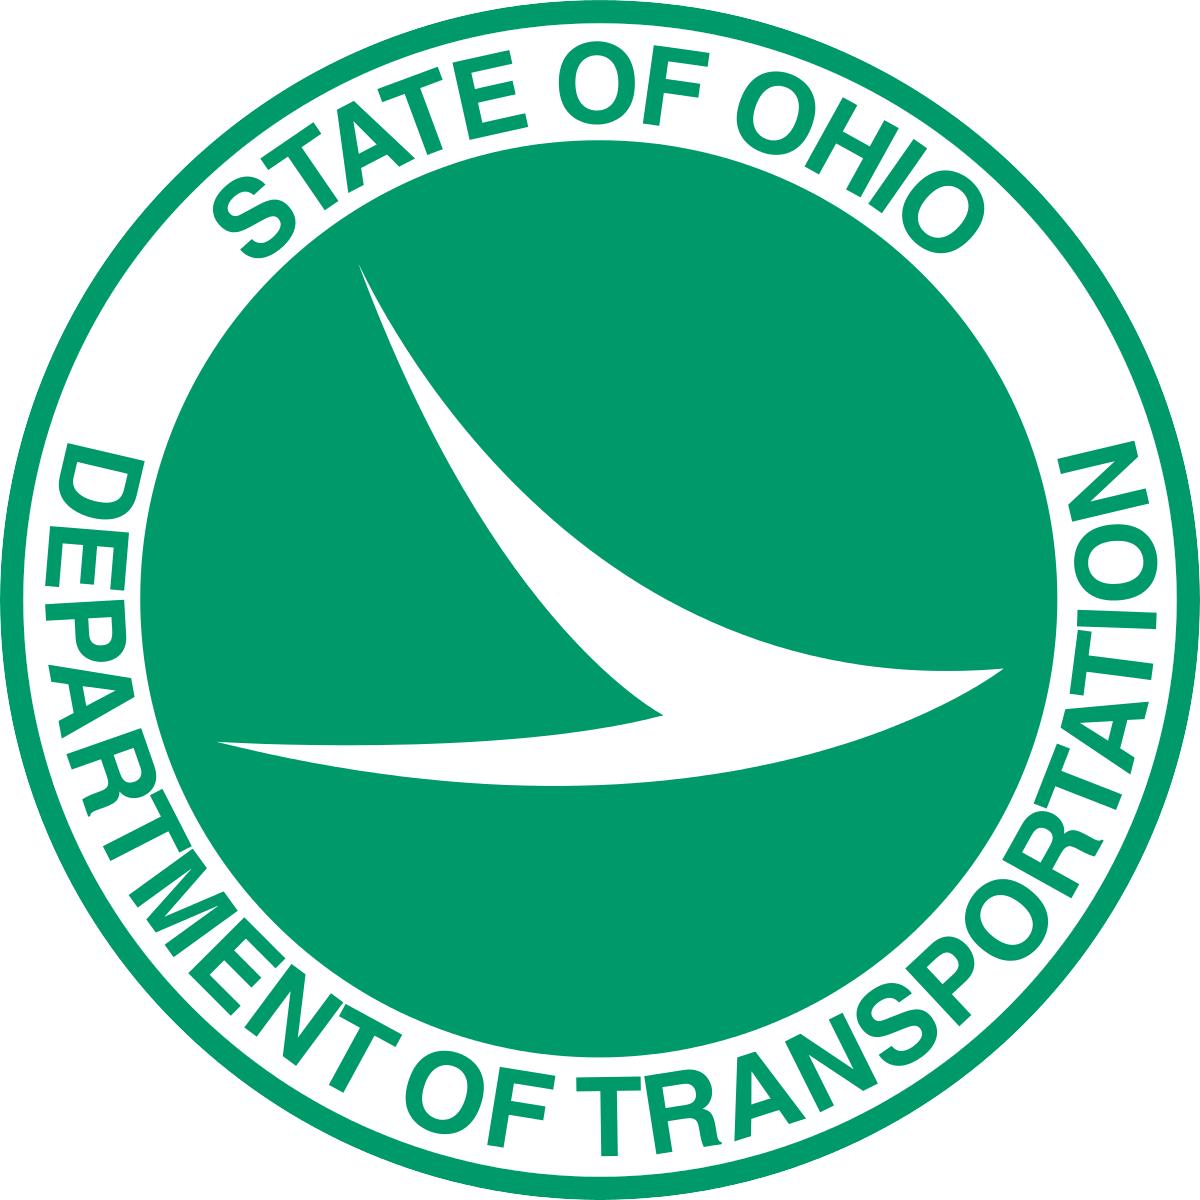 environmental and field biology department of transportation logo